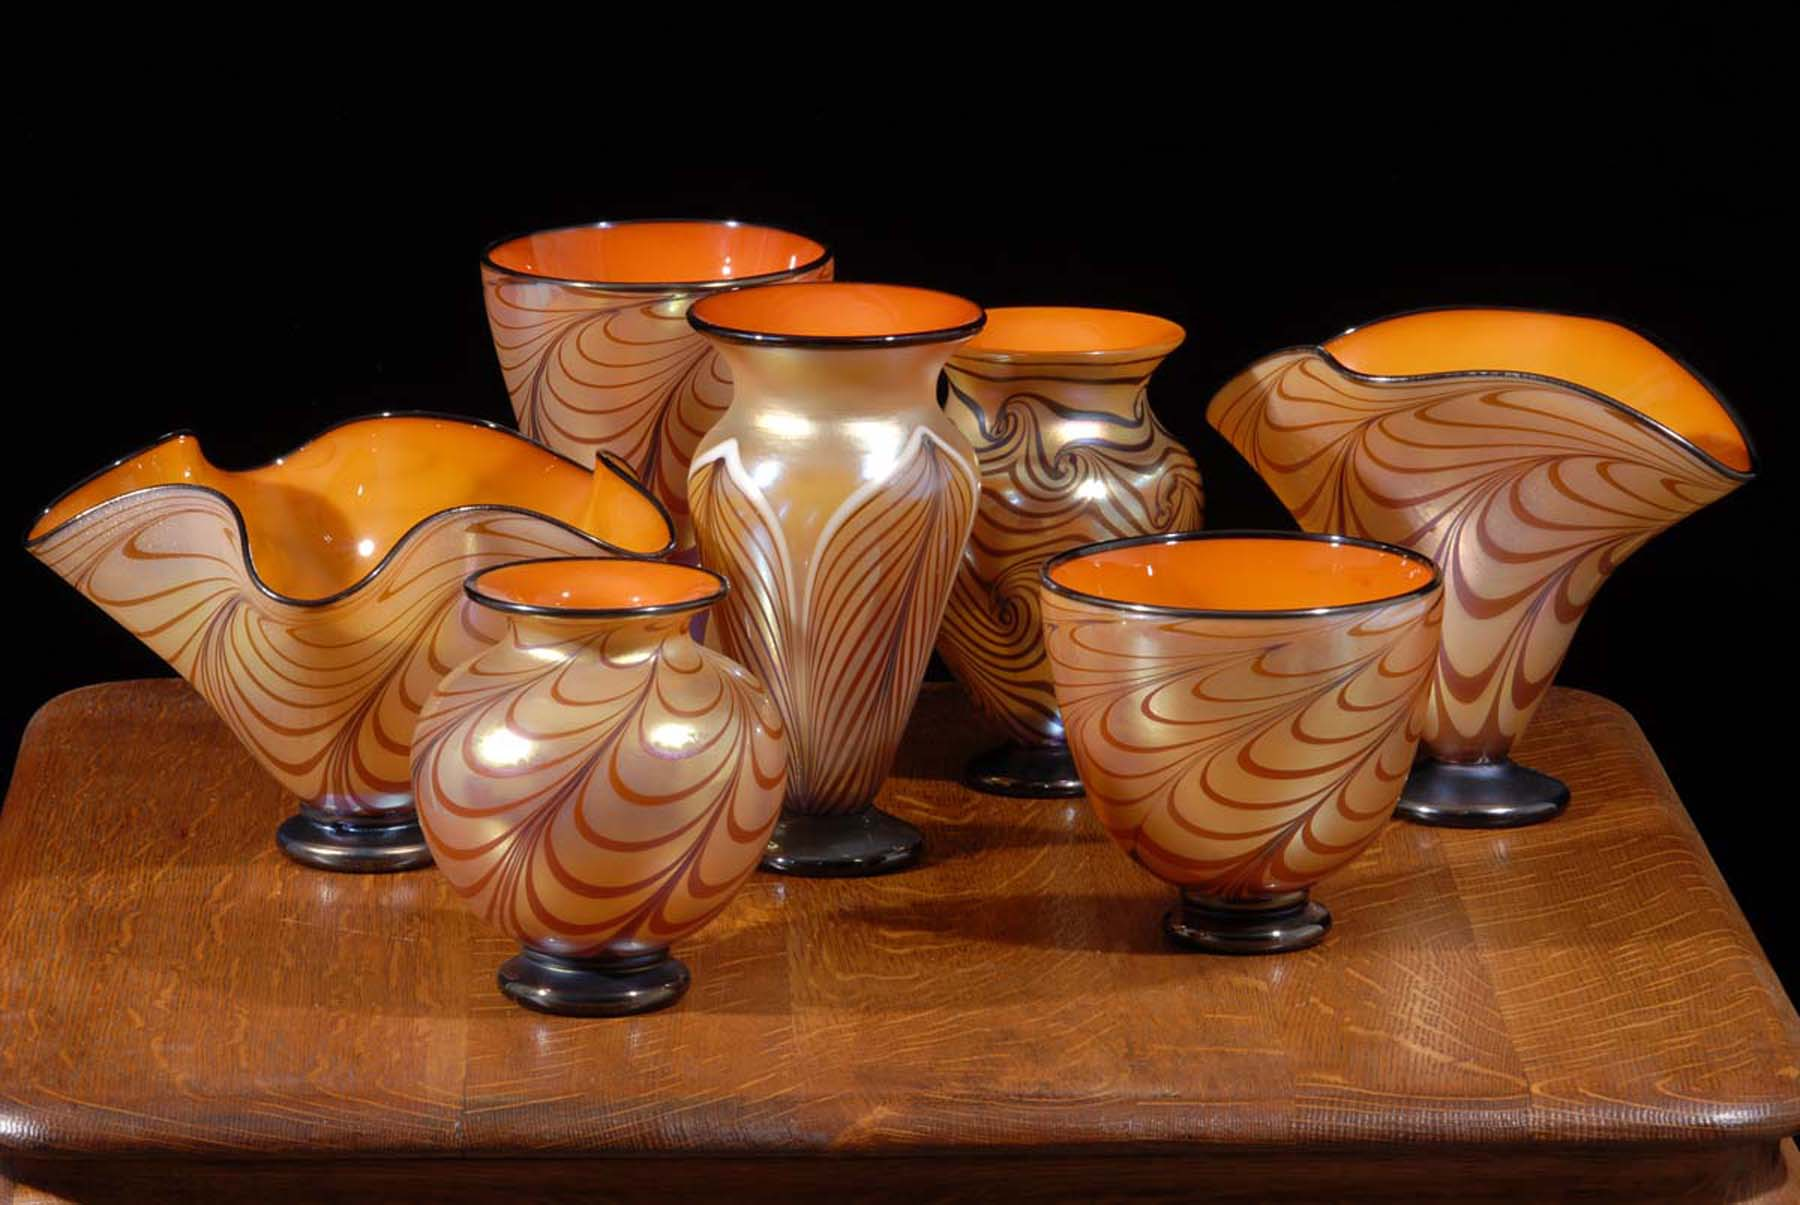 Tuscan Series with papaya interiors and gold luster decorated. cabinet vases.